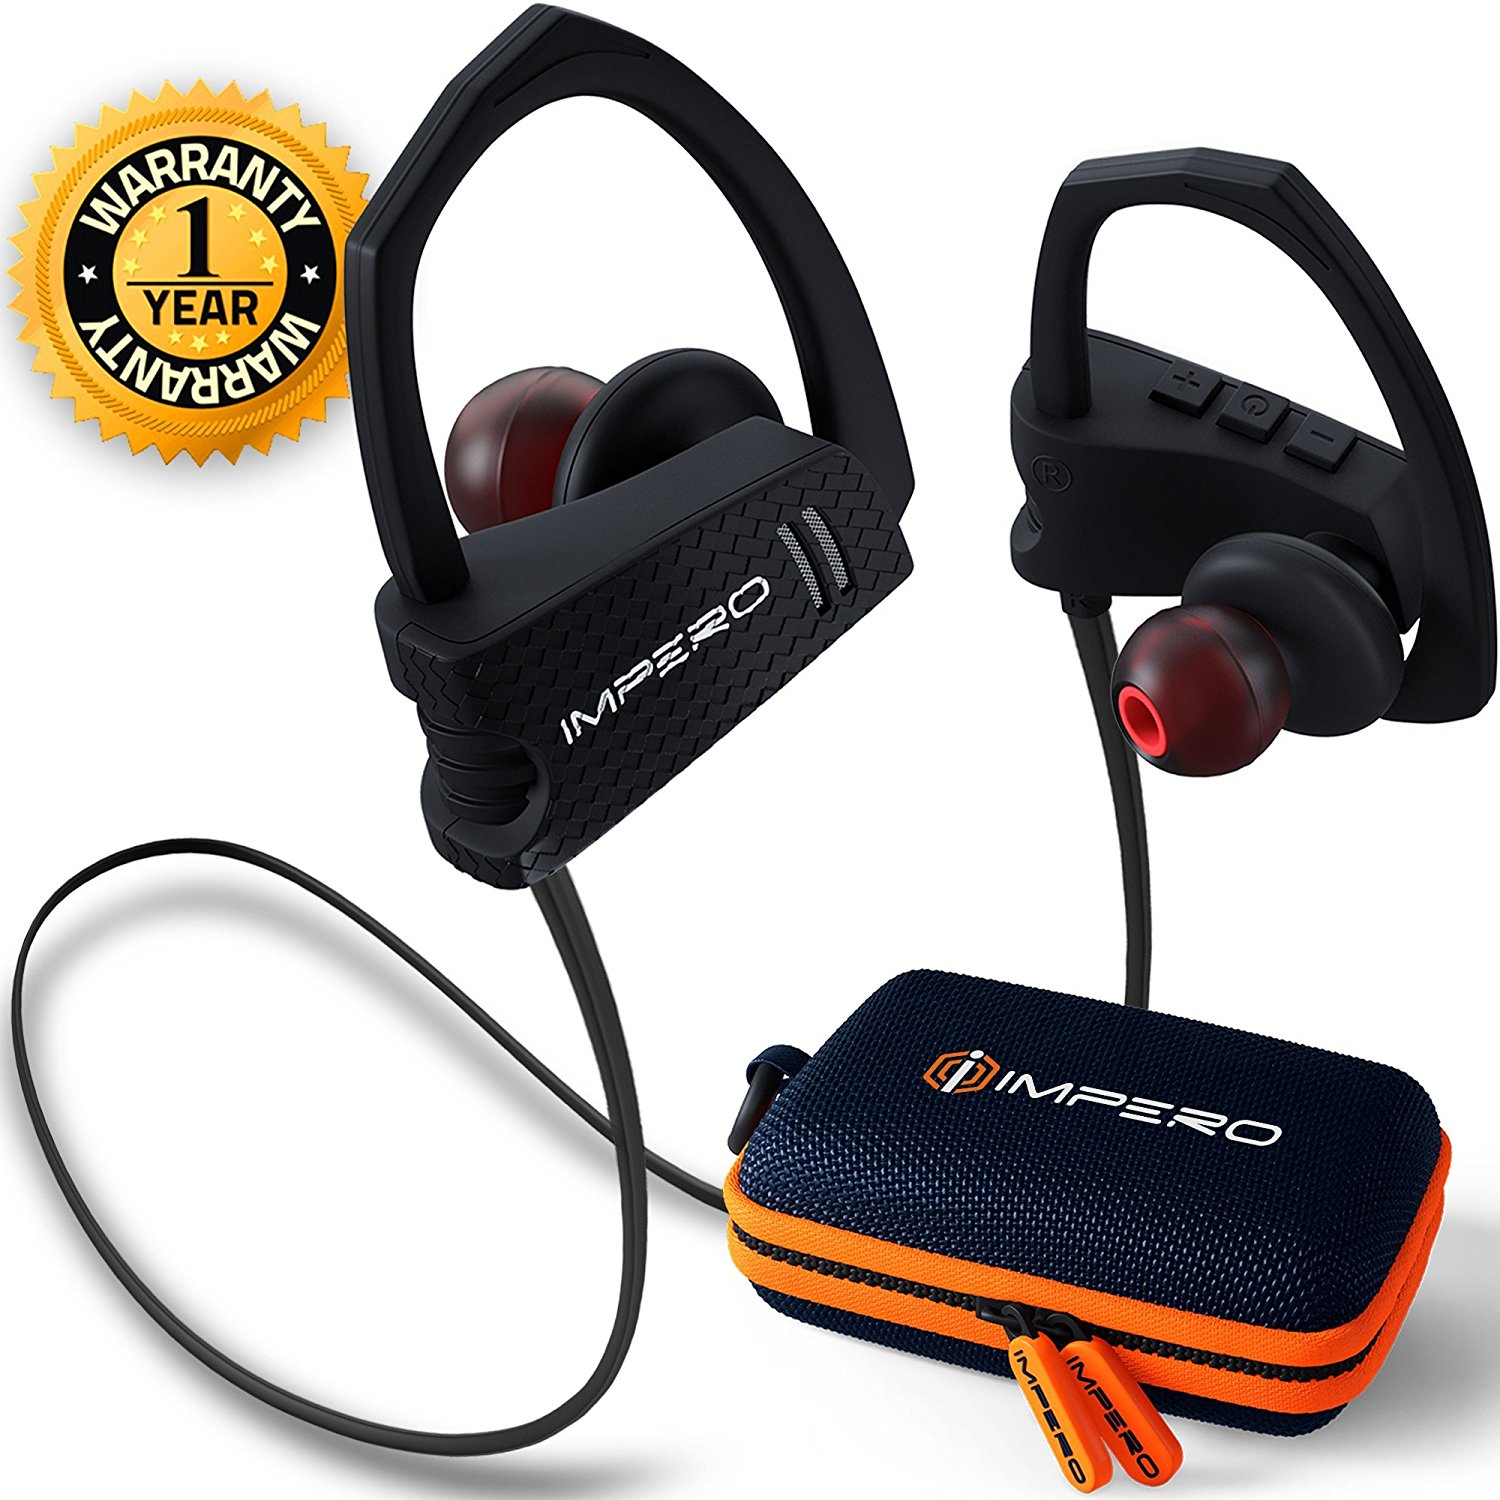 28fe33624d6 Get Quotations · Wireless headphones IMPERO Sport Bluetooth headphones with  microphone, Wireless earbuds Sport headphones Best Bluetooth earbuds